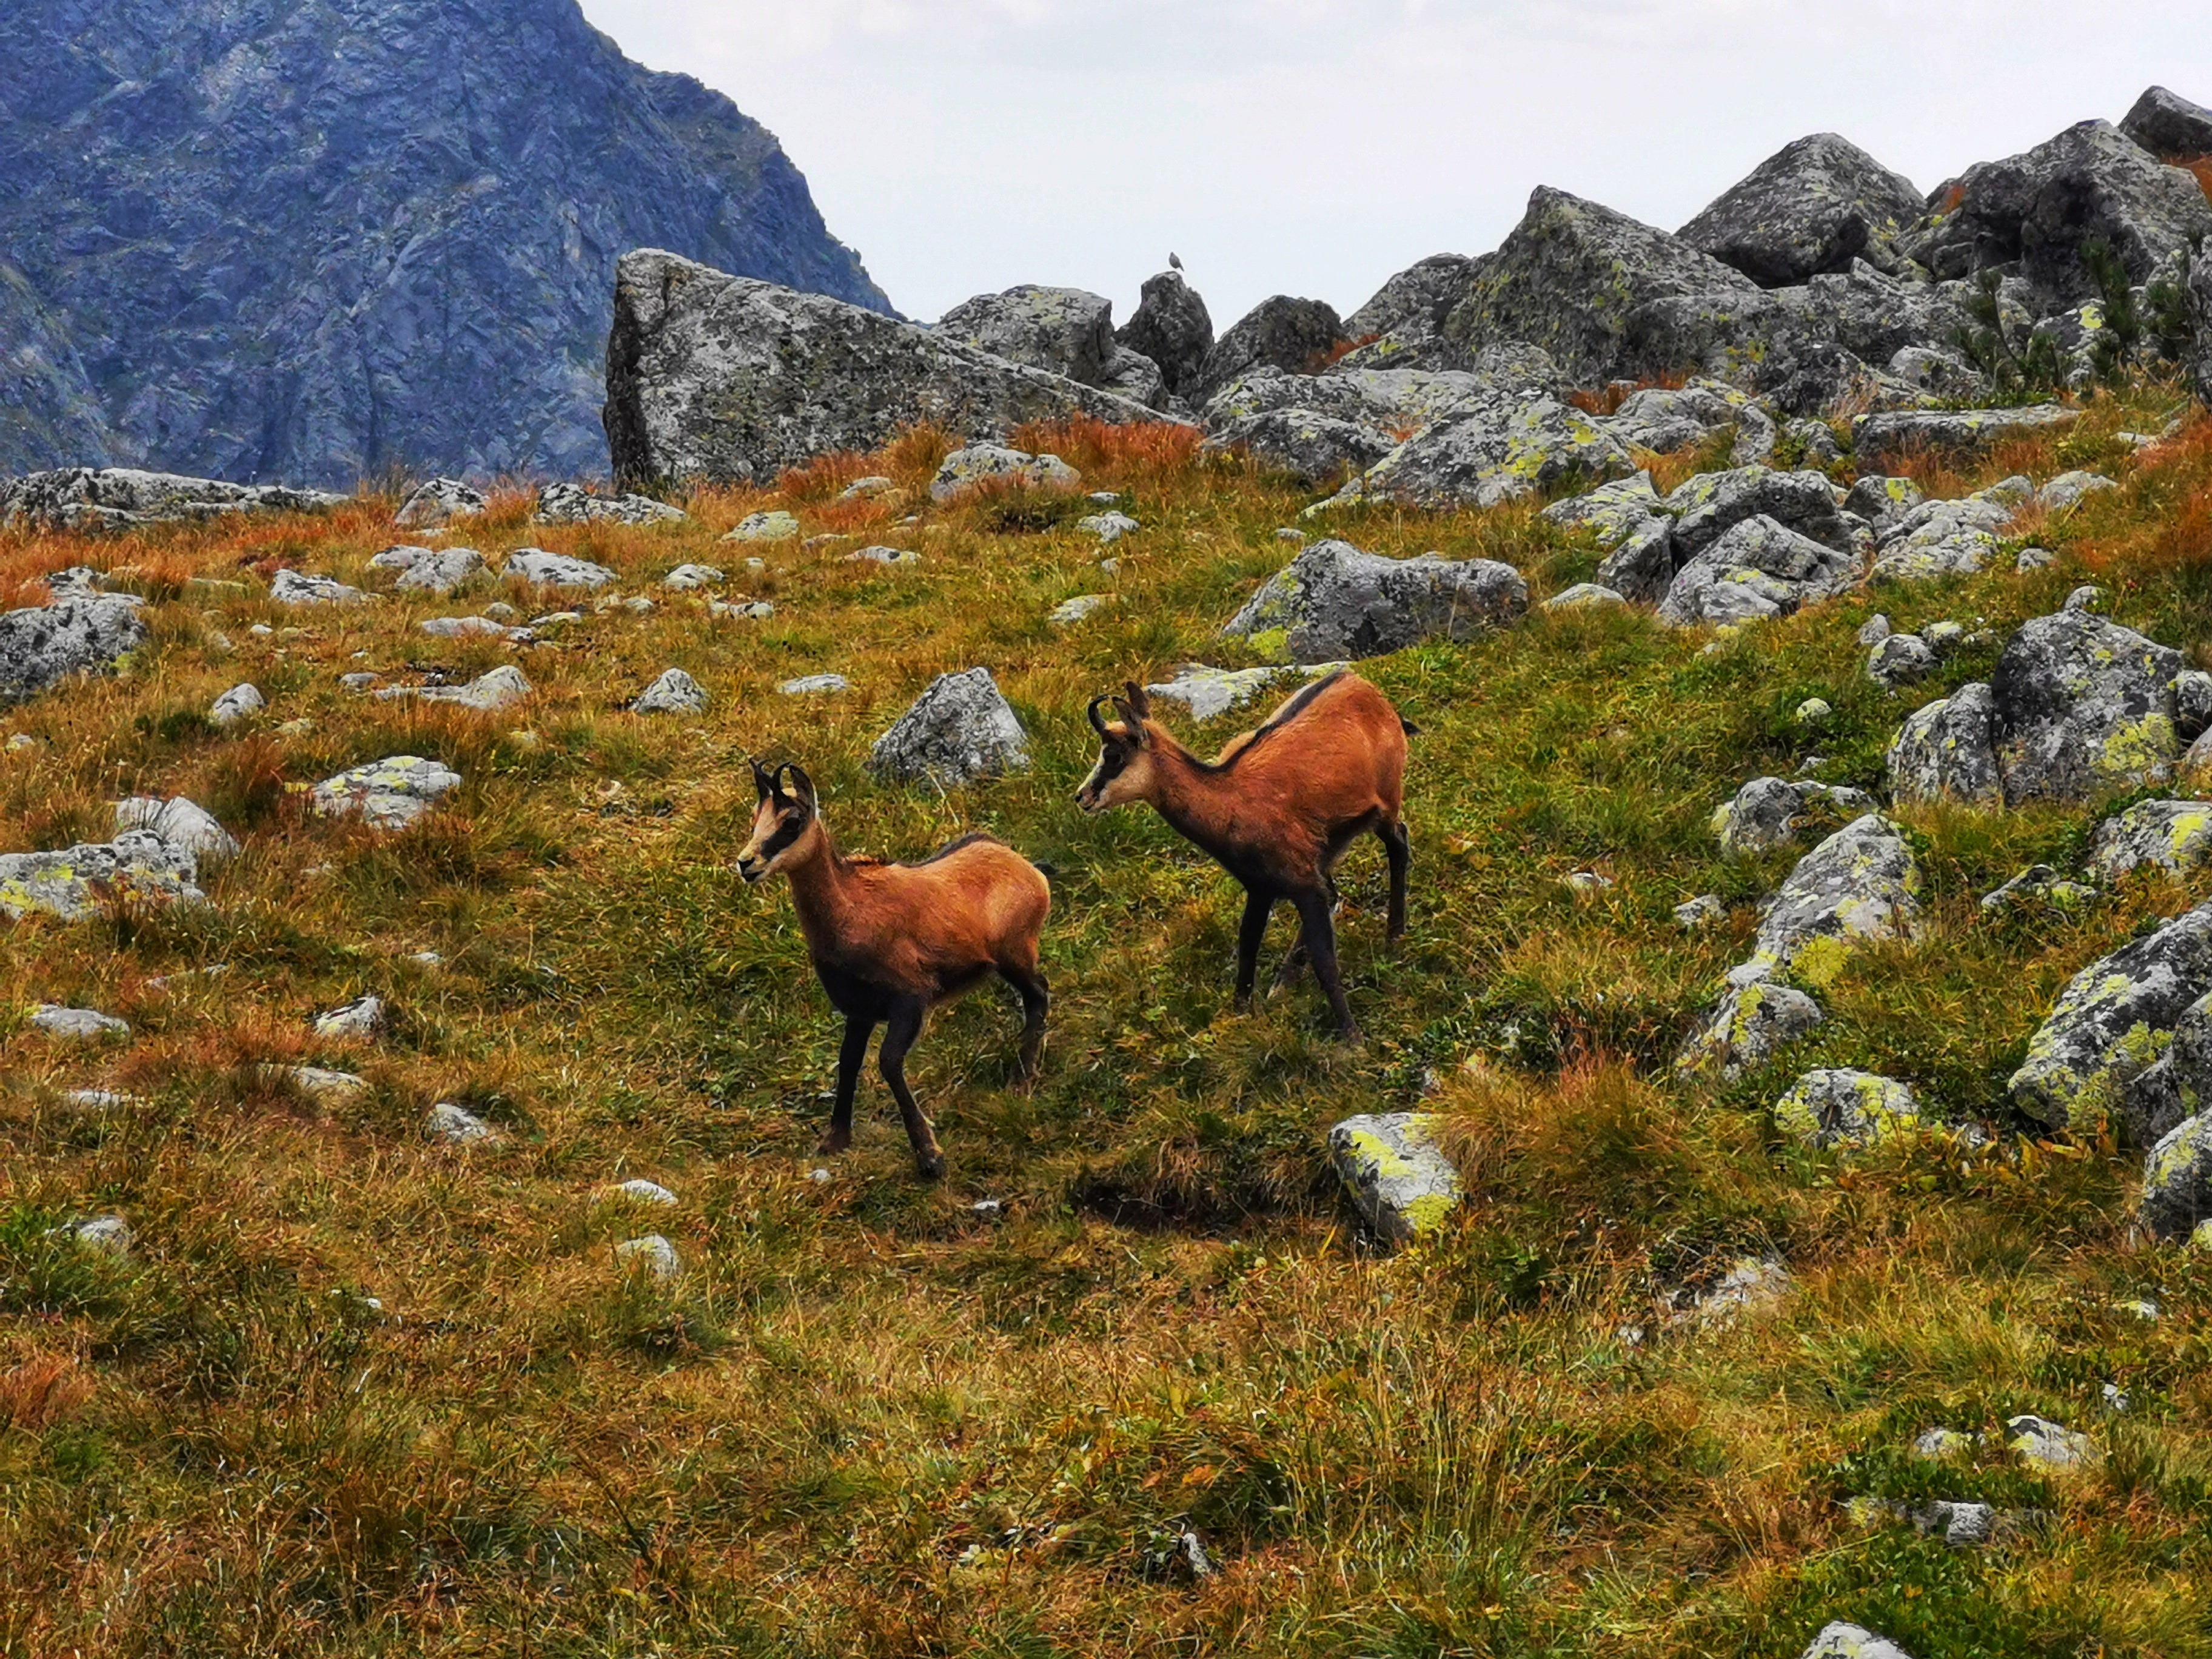 The Tatra chamois is a subspecies of the chamois of the genus Rupicapra.